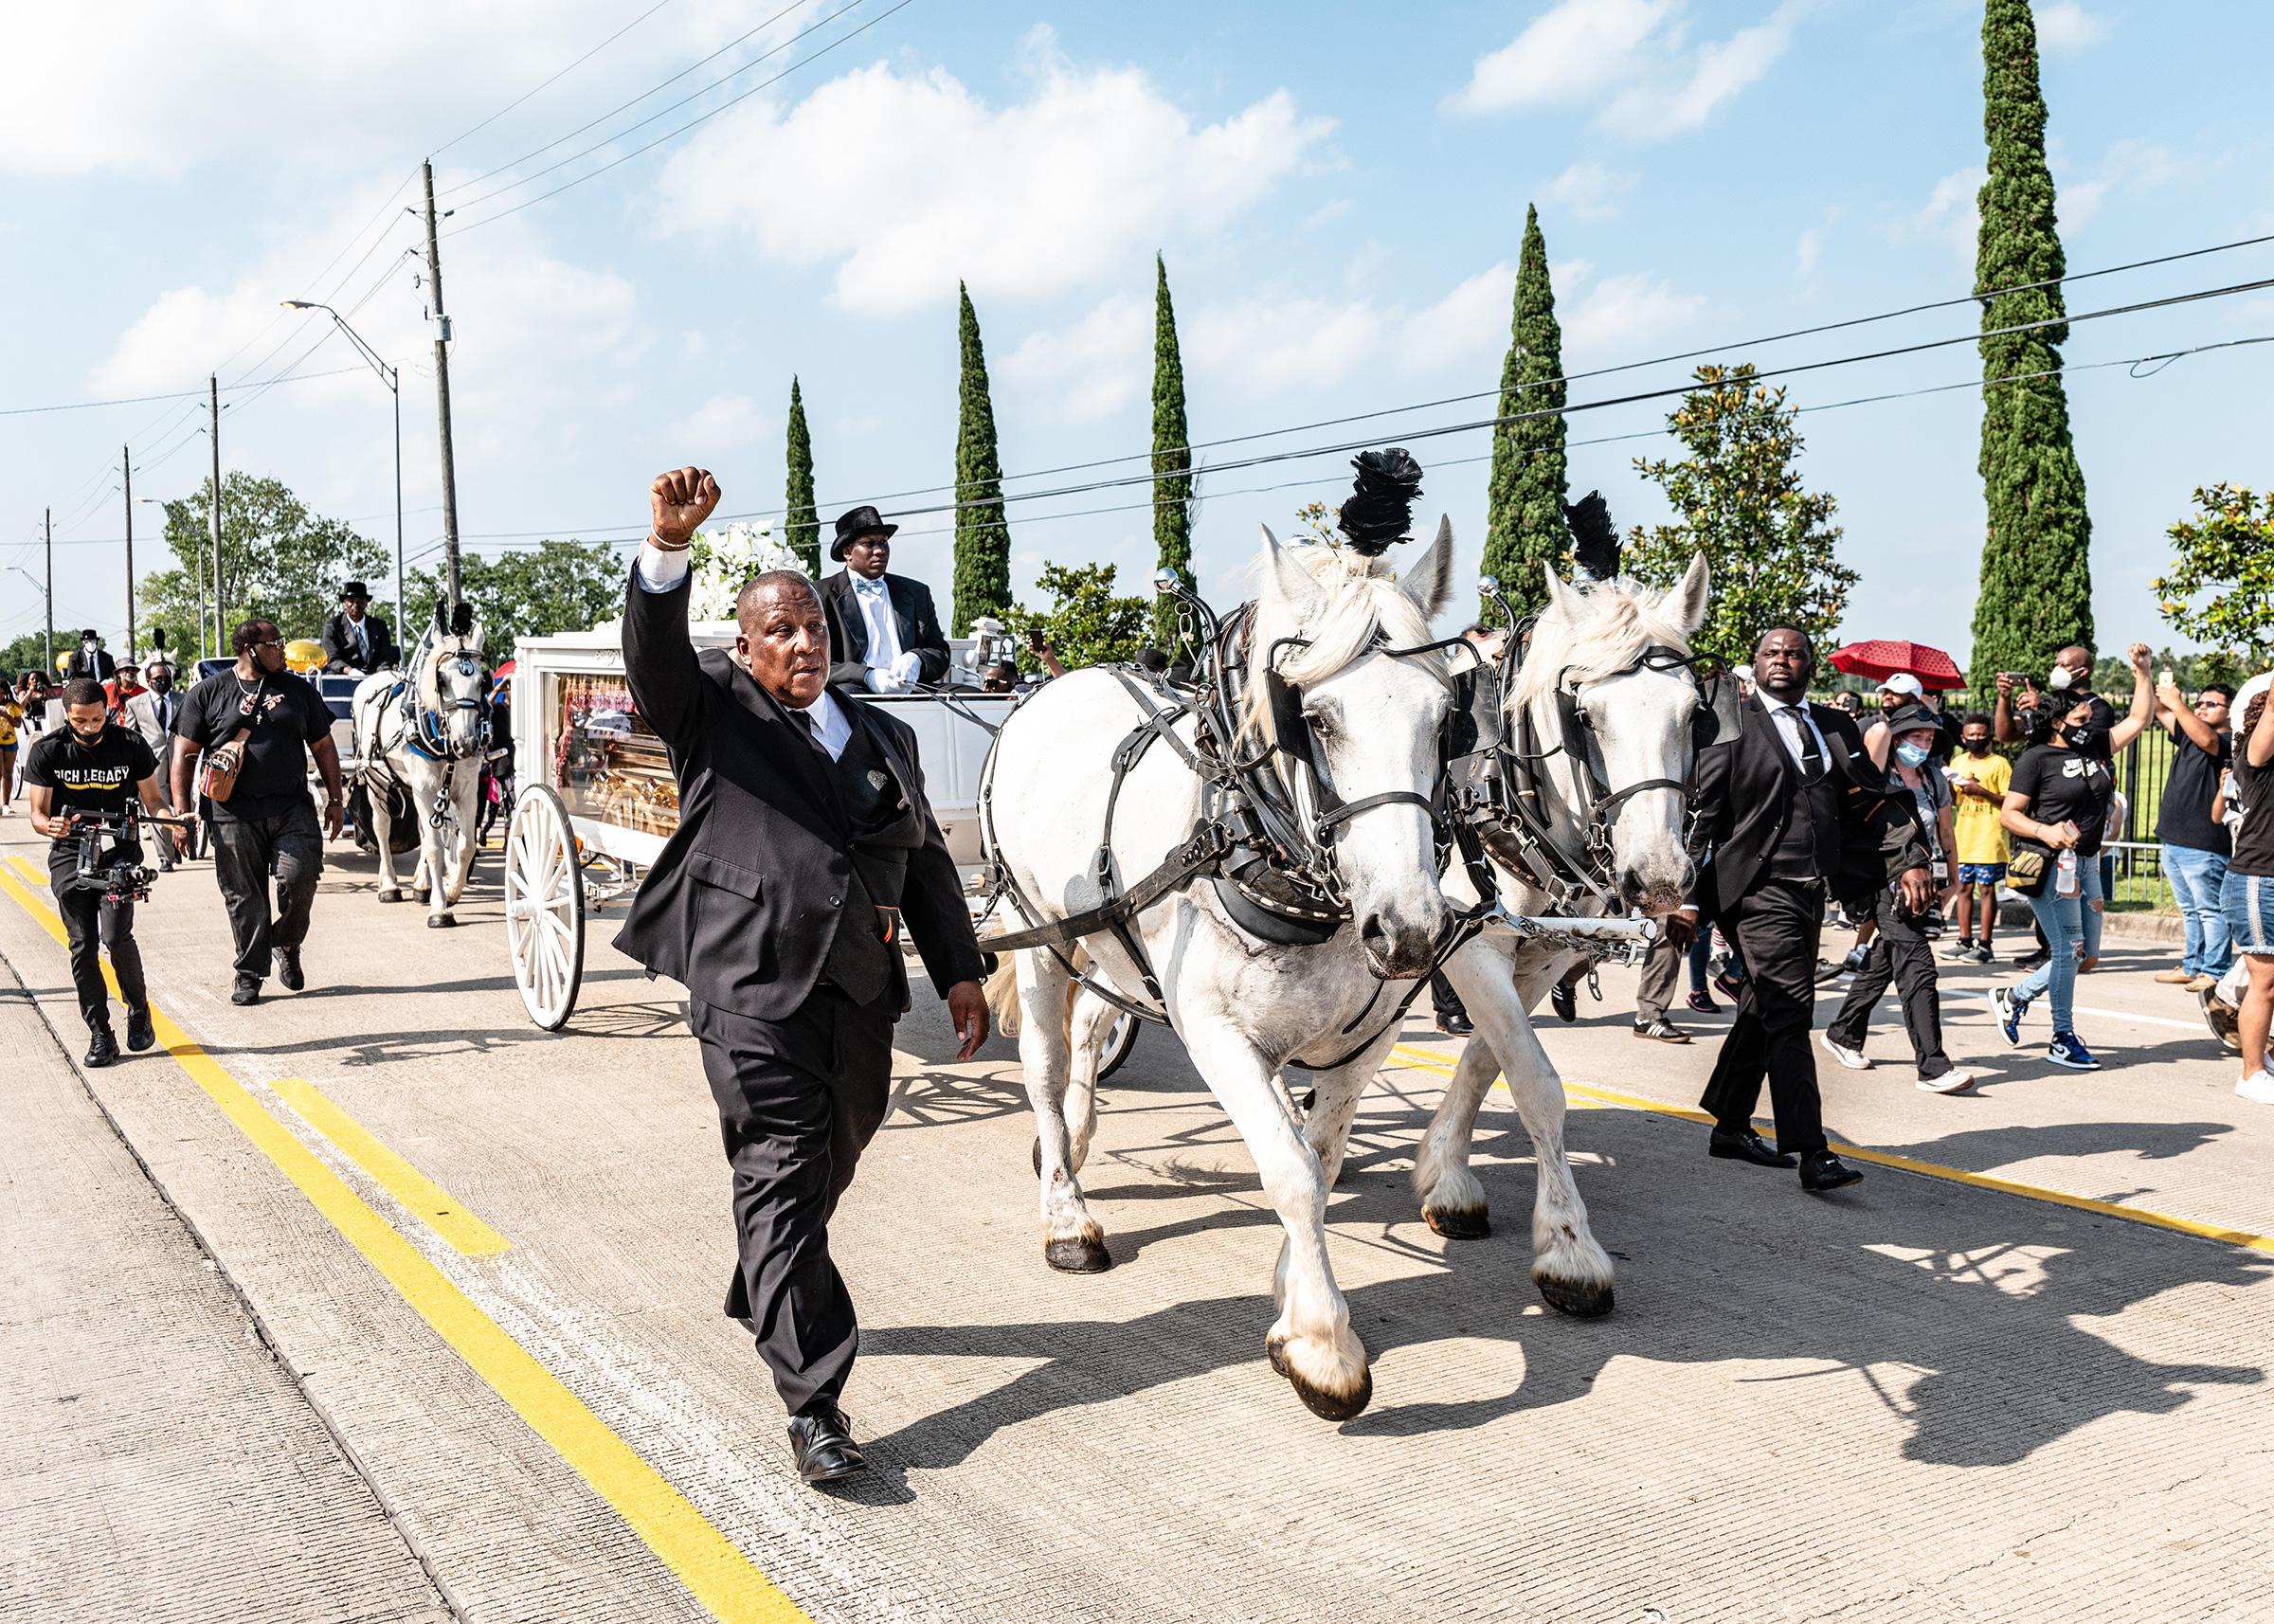 "A horse-drawn carriage brought Floyd's body into the cemetery on June 9. ""It felt like a state funeral,"" Roye said. ""It felt like they were sending him off with the newfound persona that he had been catapulted into, and this was one of the ways to honor what he became. It felt right."""